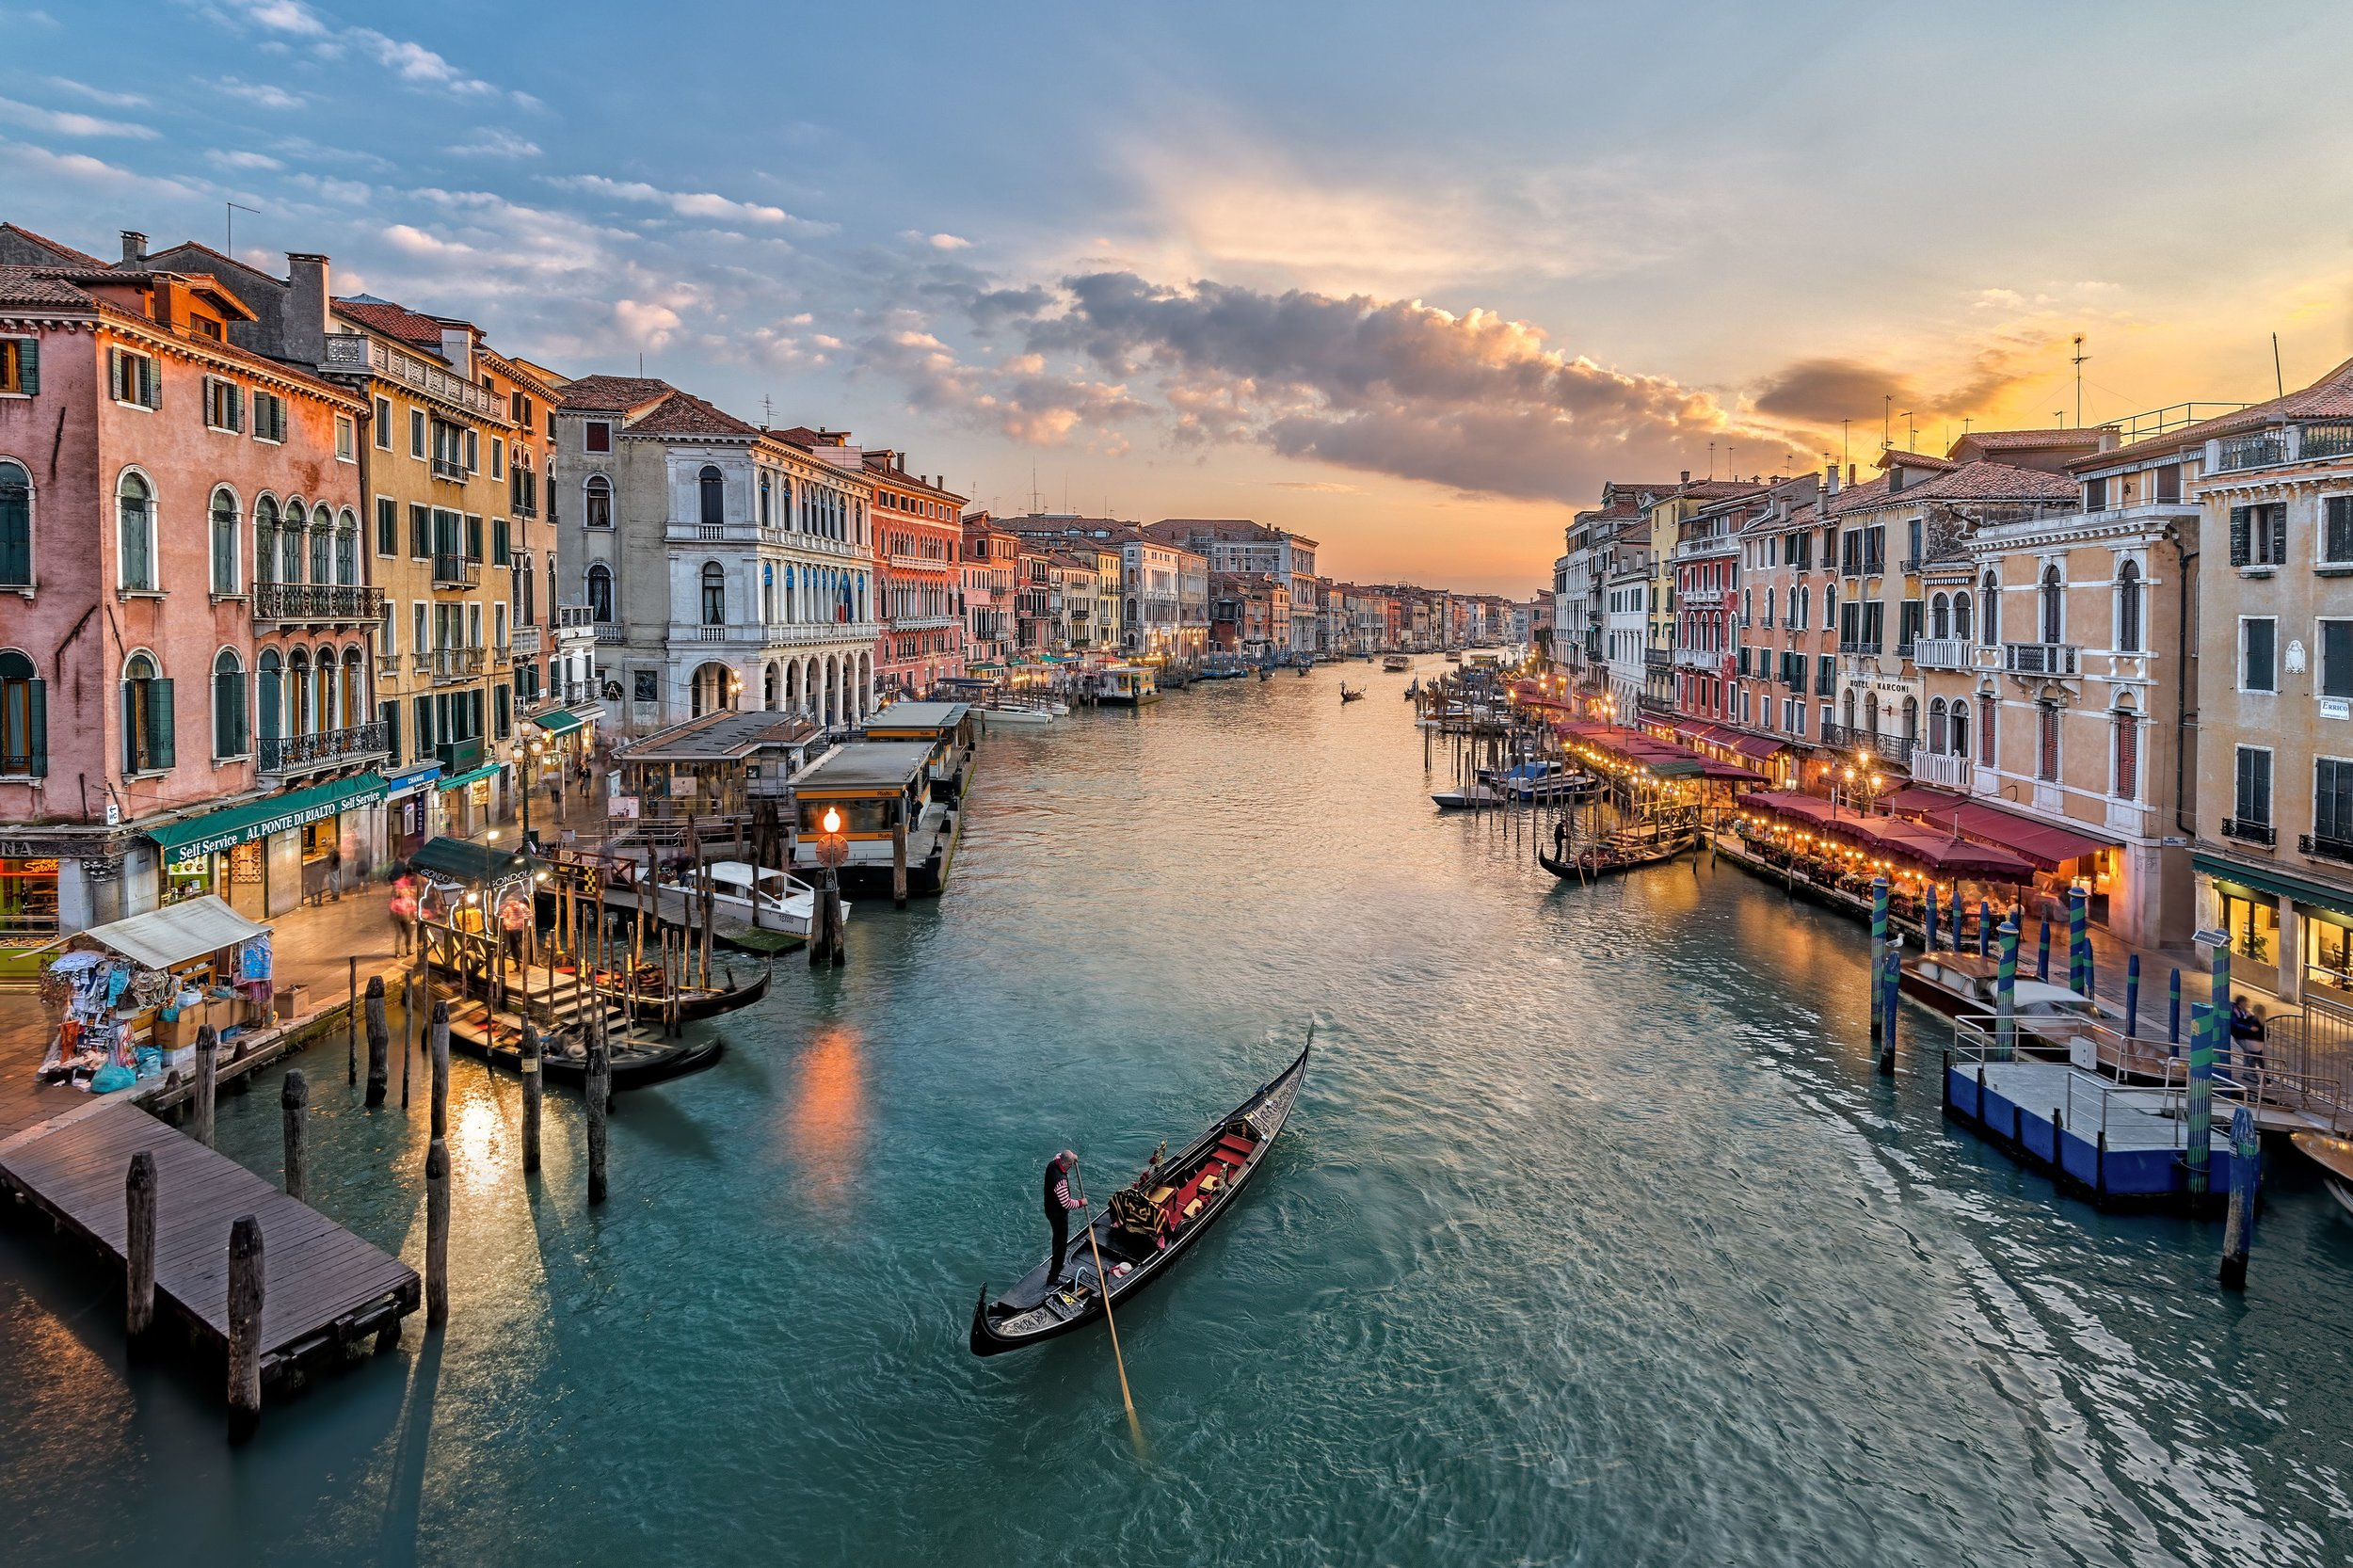 Romantic Reflections - 7-Night Mediterranean Rome to VeniceSep 7 - Sep 14, 2019